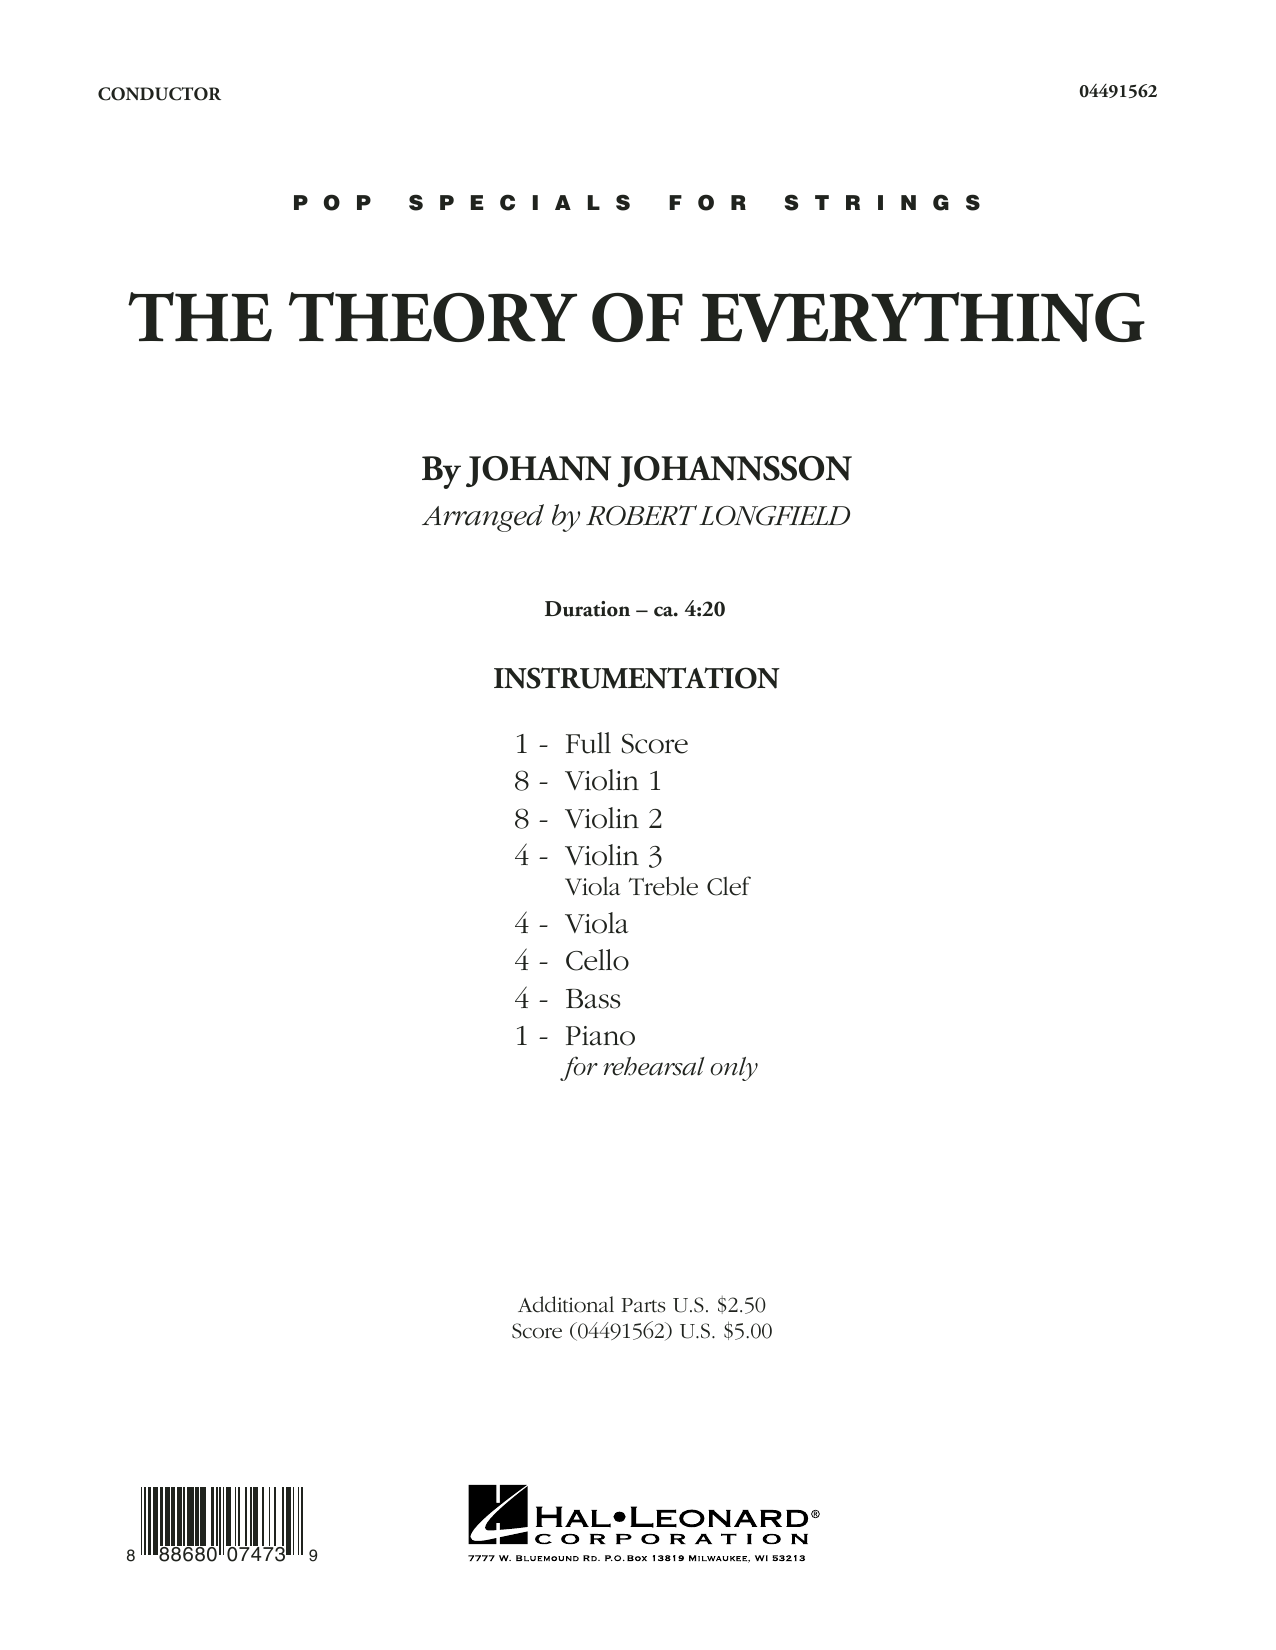 The Theory of Everything (COMPLETE) sheet music for orchestra by Johann Johannsson and Robert Longfield. Score Image Preview.